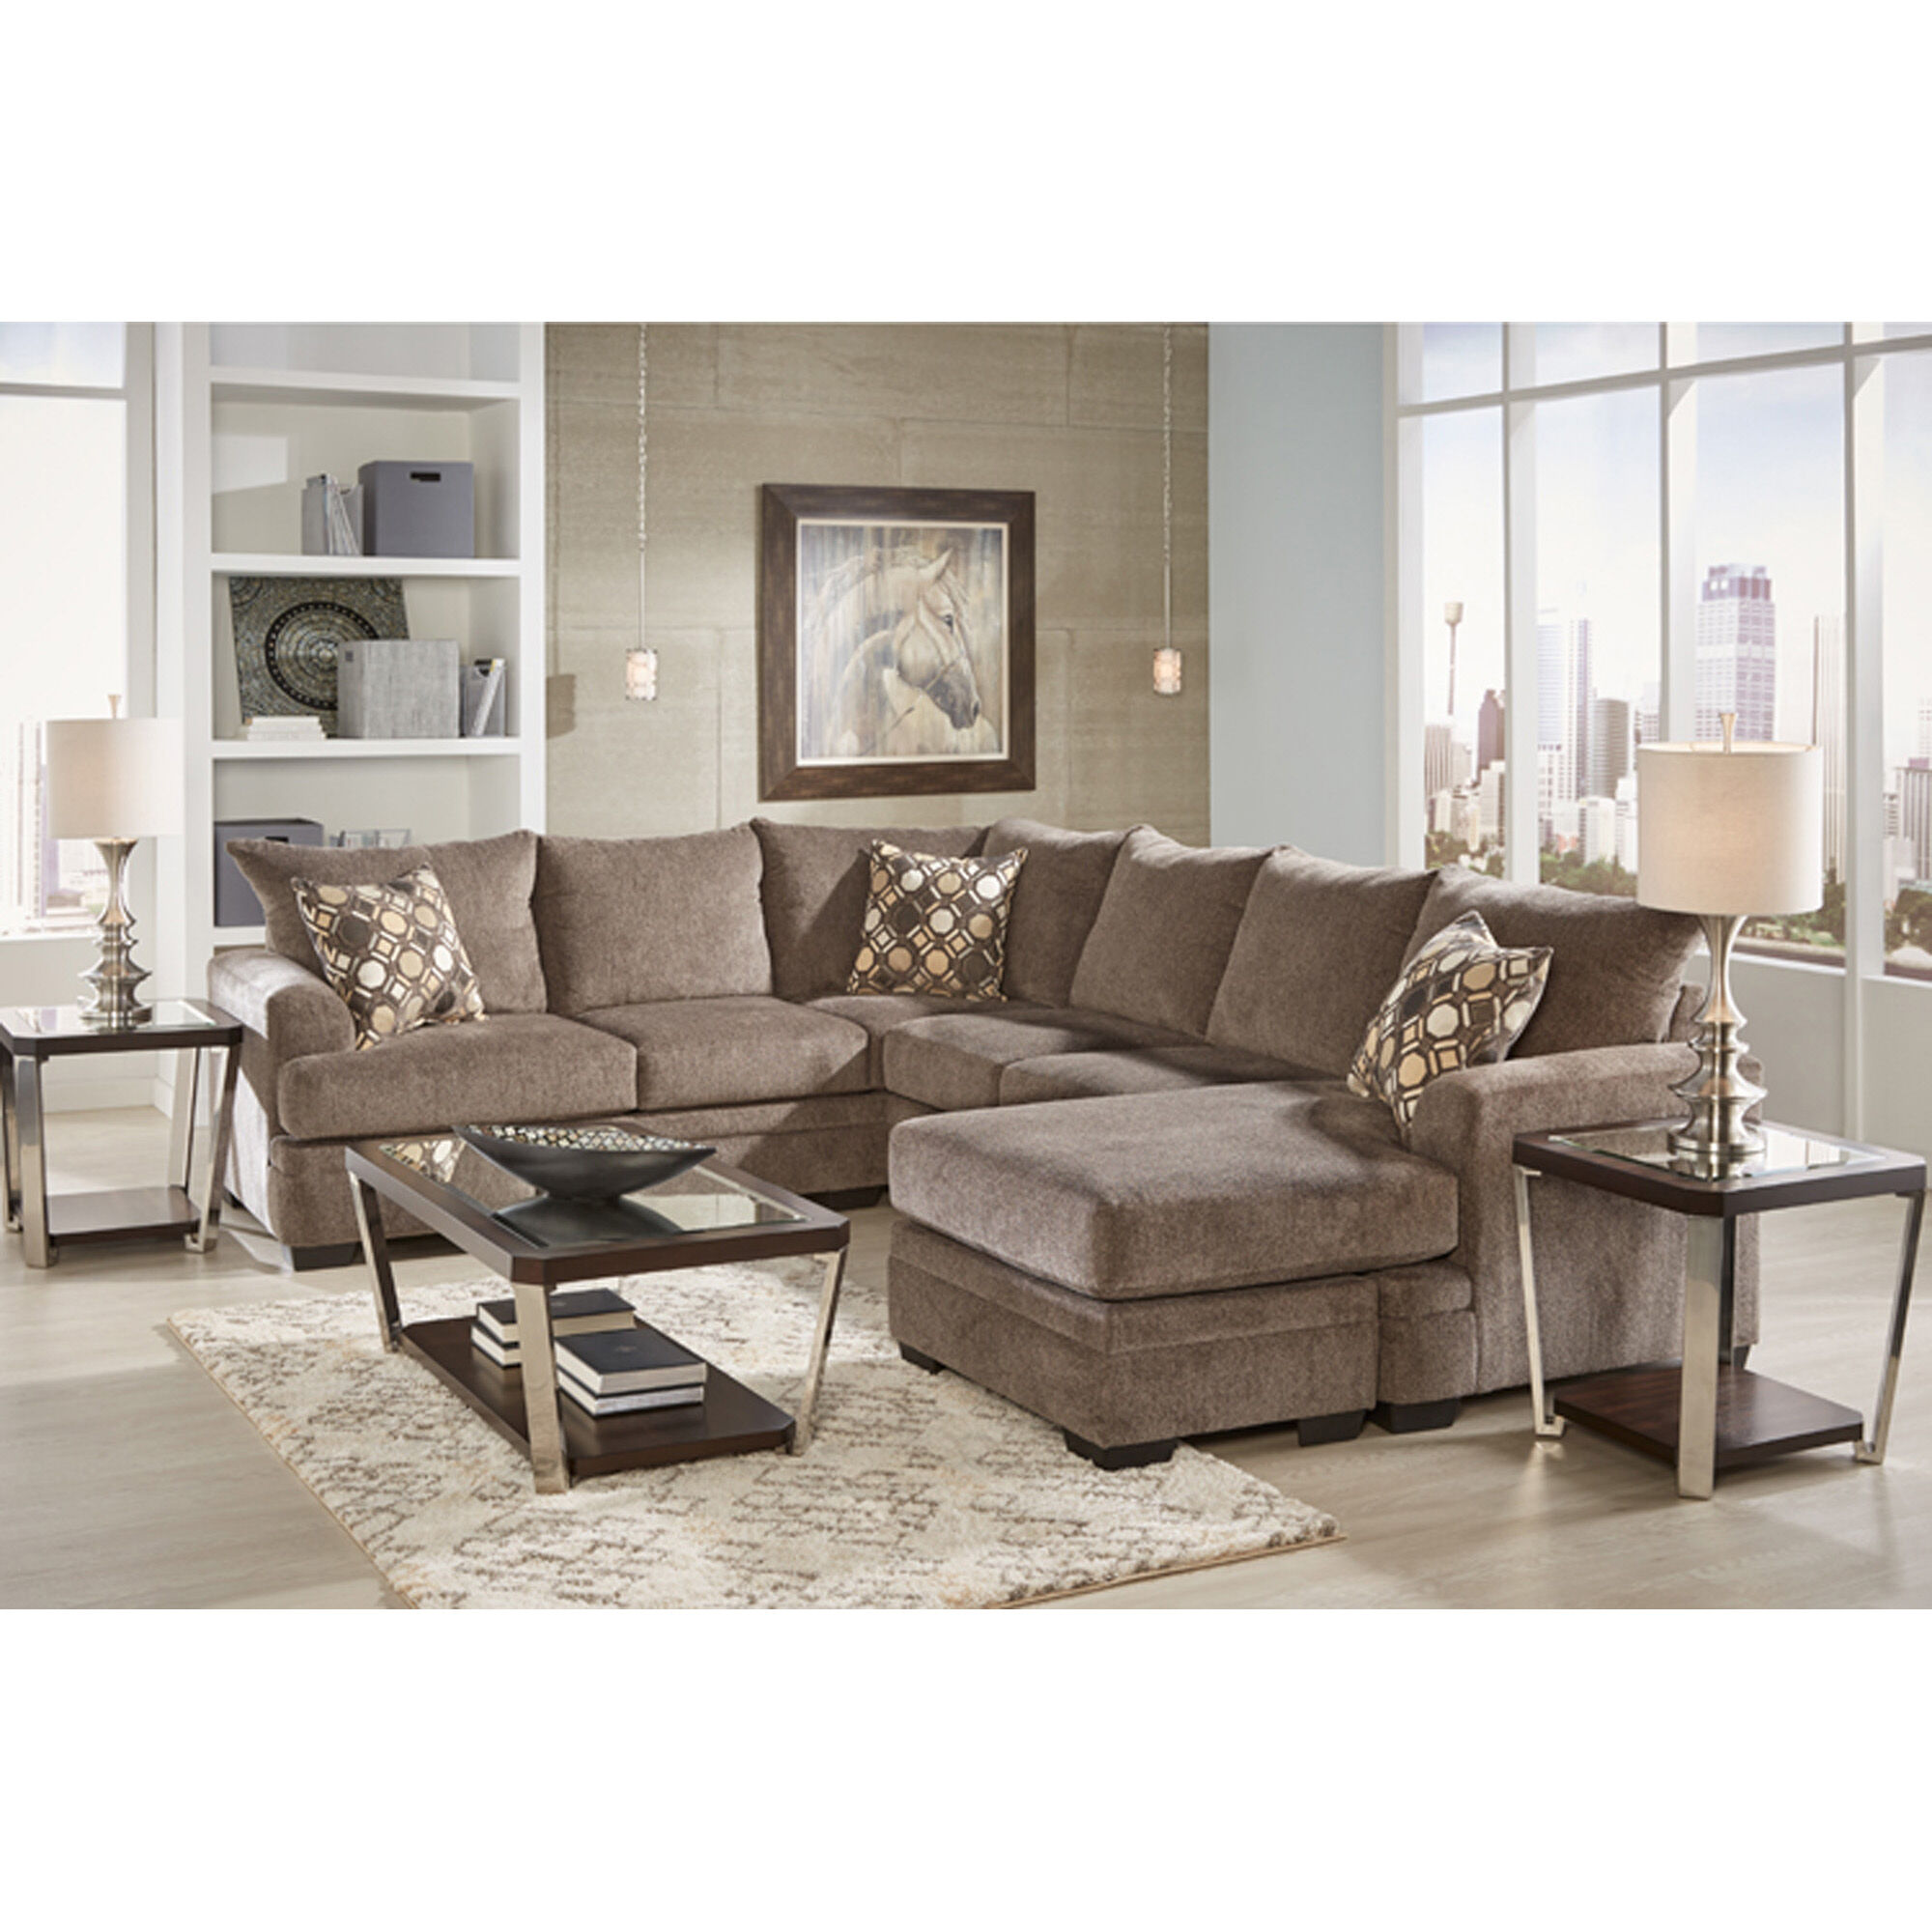 Great 7 Piece Kimberly Living Room Collection